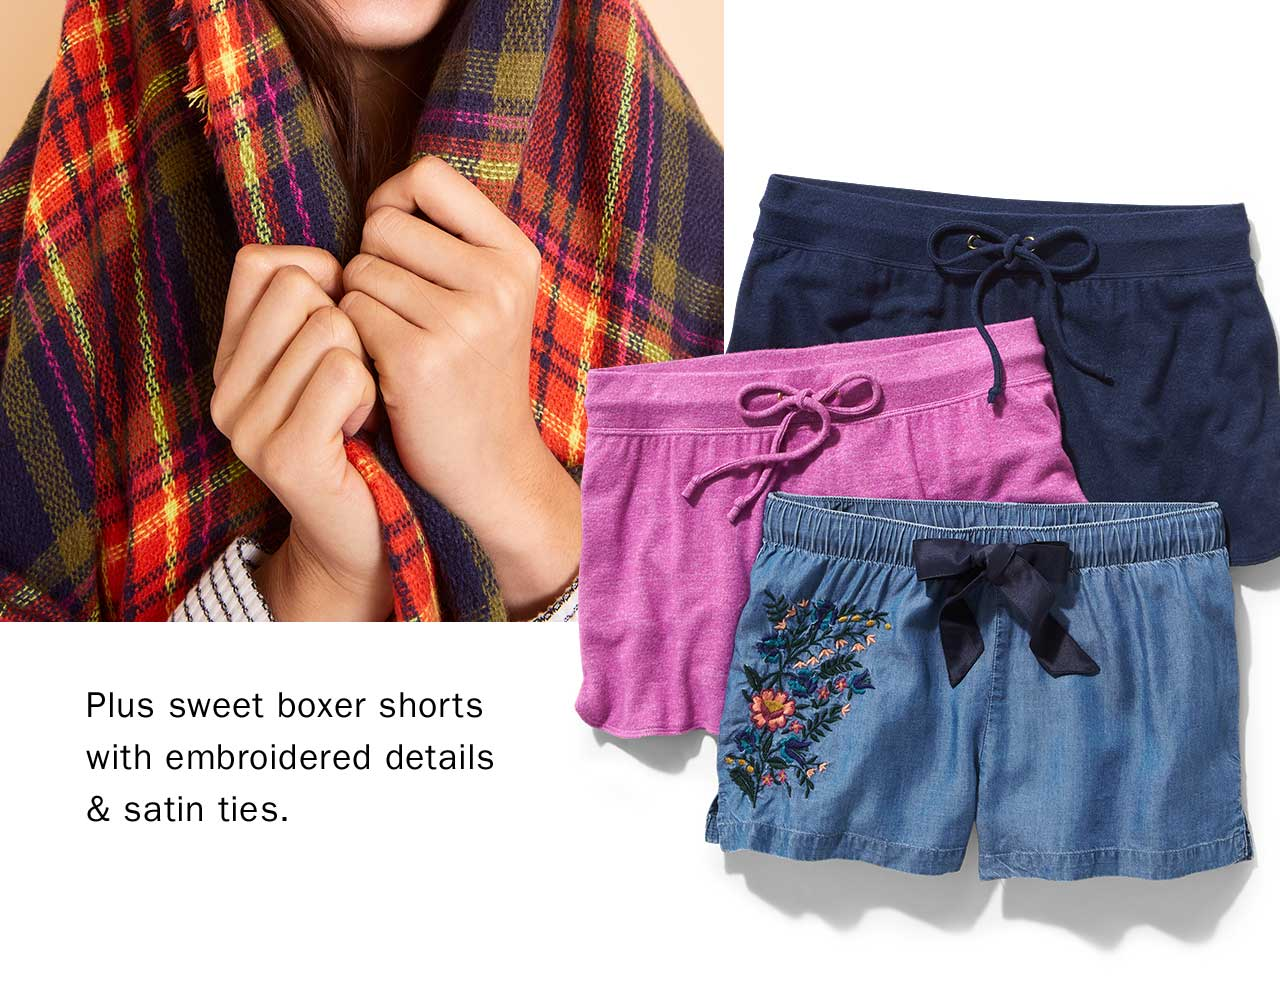 Plus sweet boxer shorts with embroidered details & satin ties.